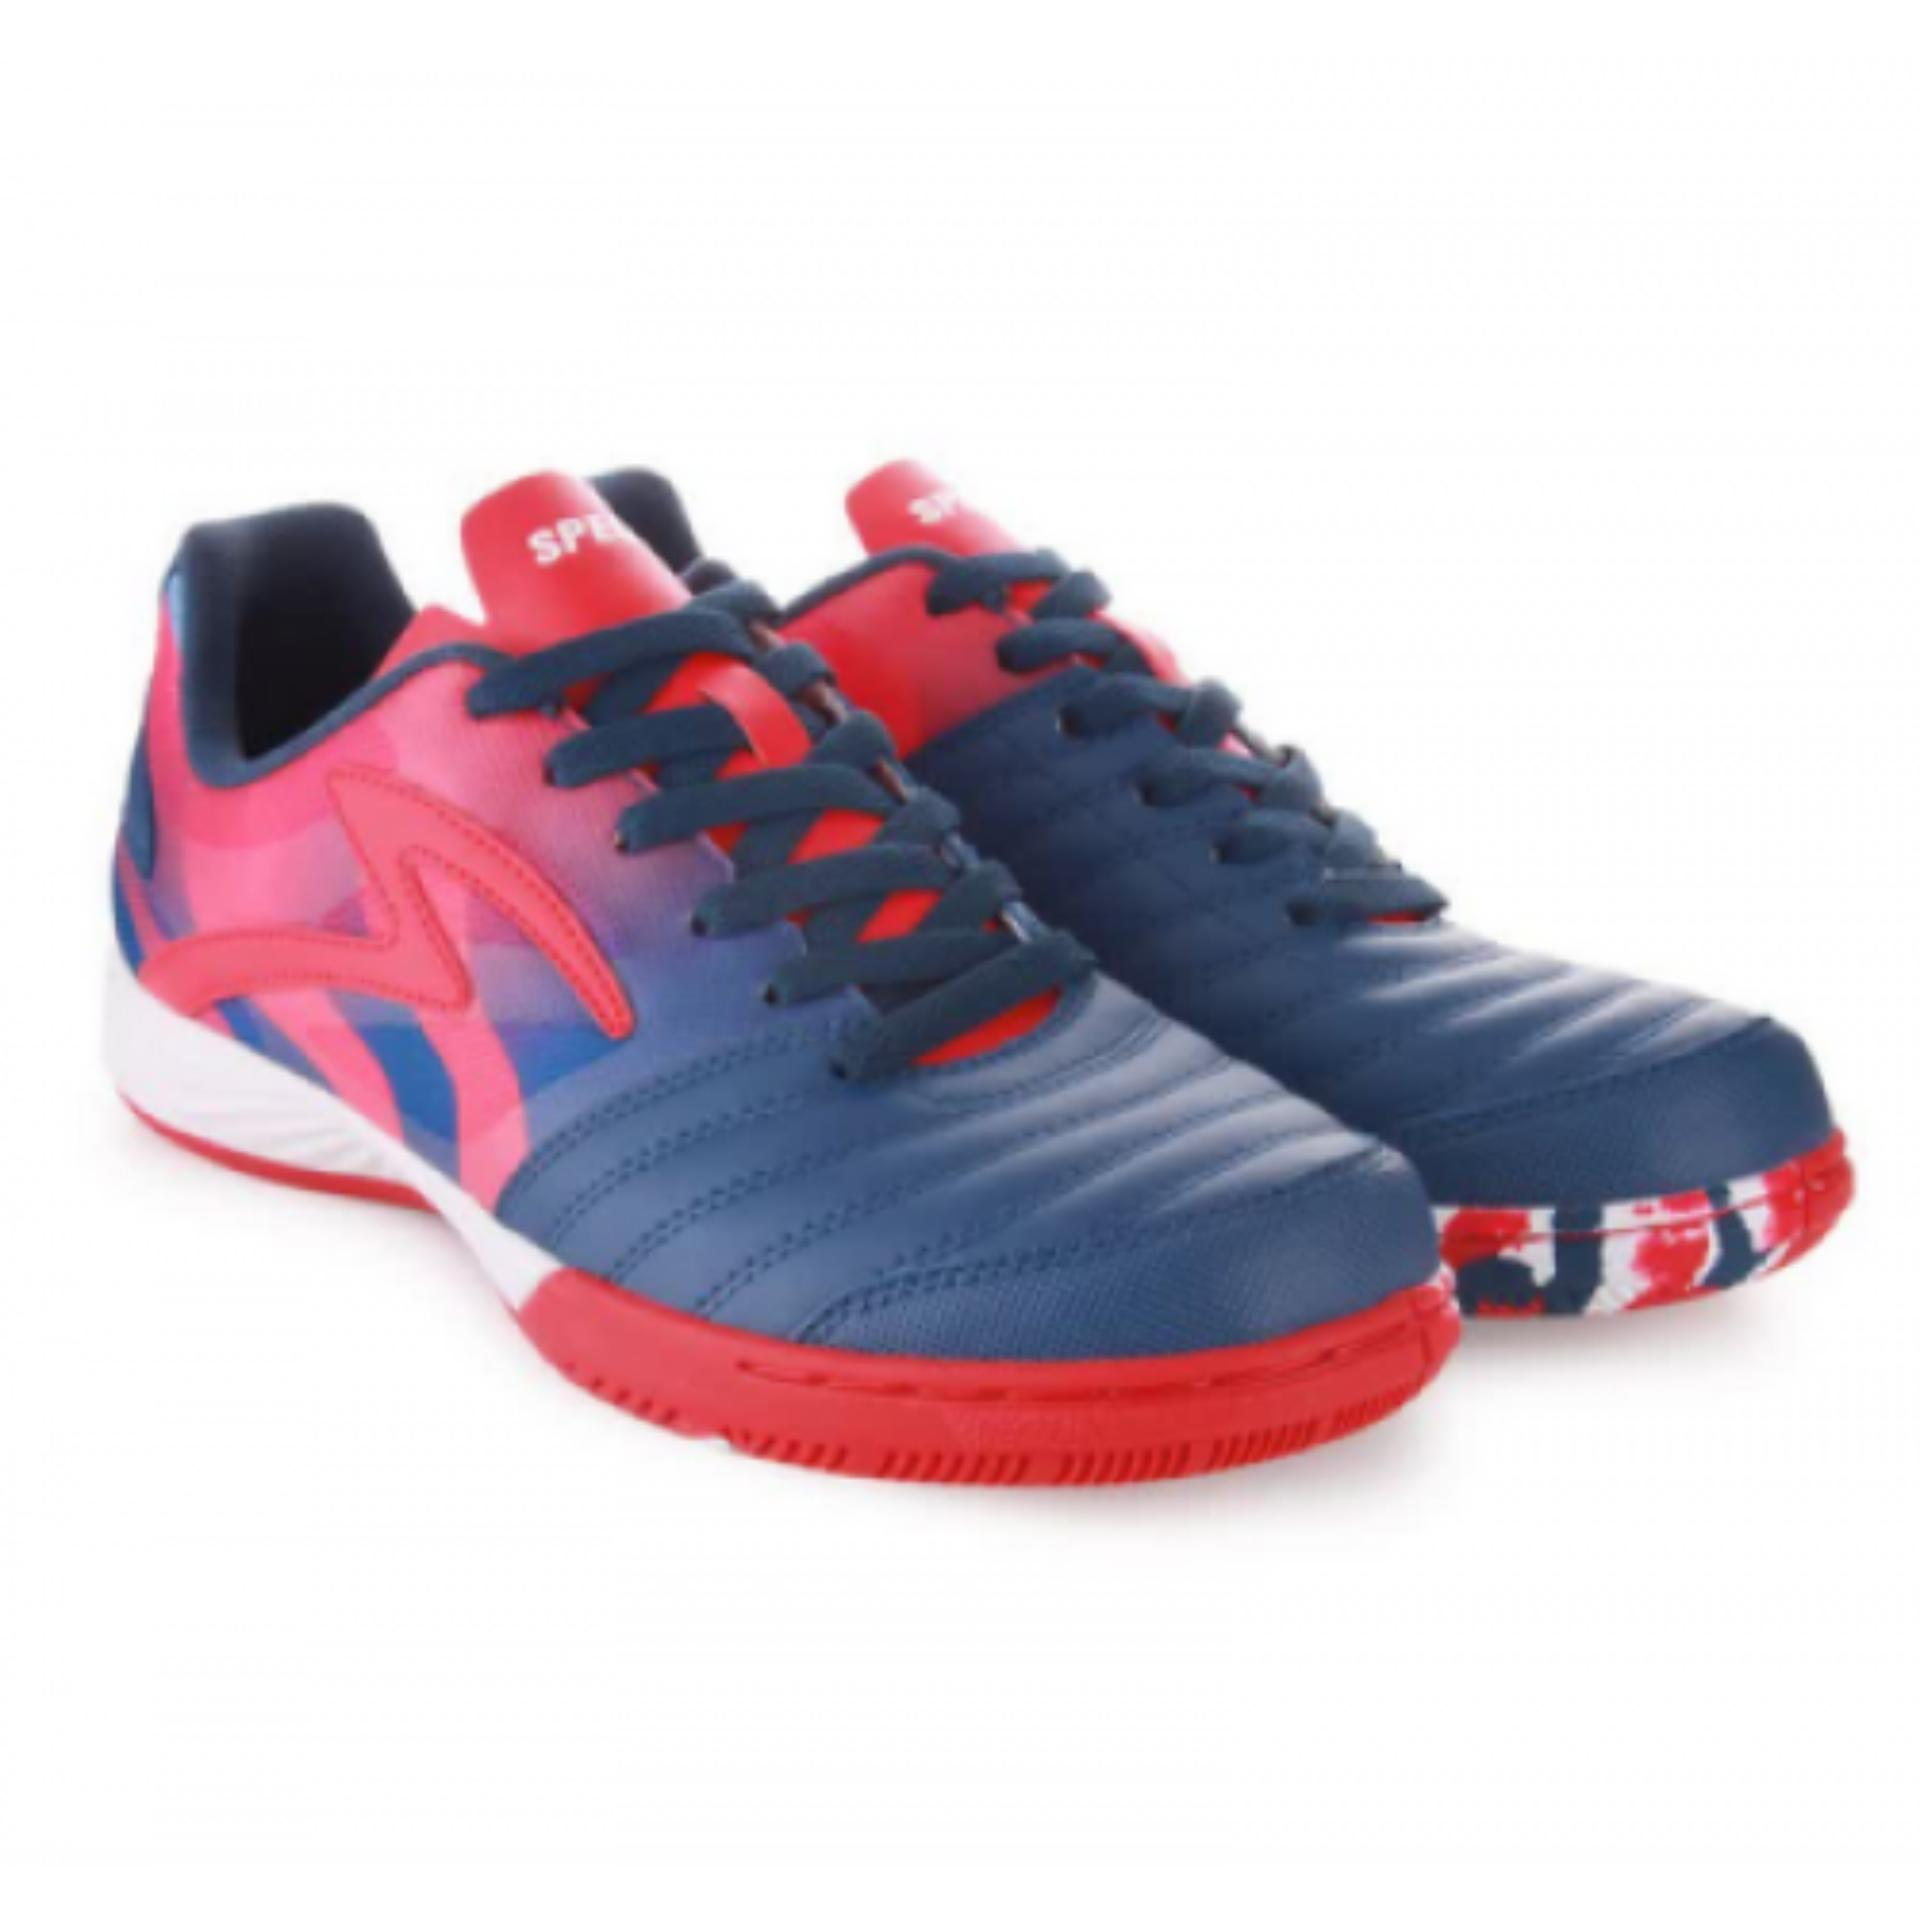 Specs Metasala Spike Galaxy Blue Primer Red White   Sepatu Futsal